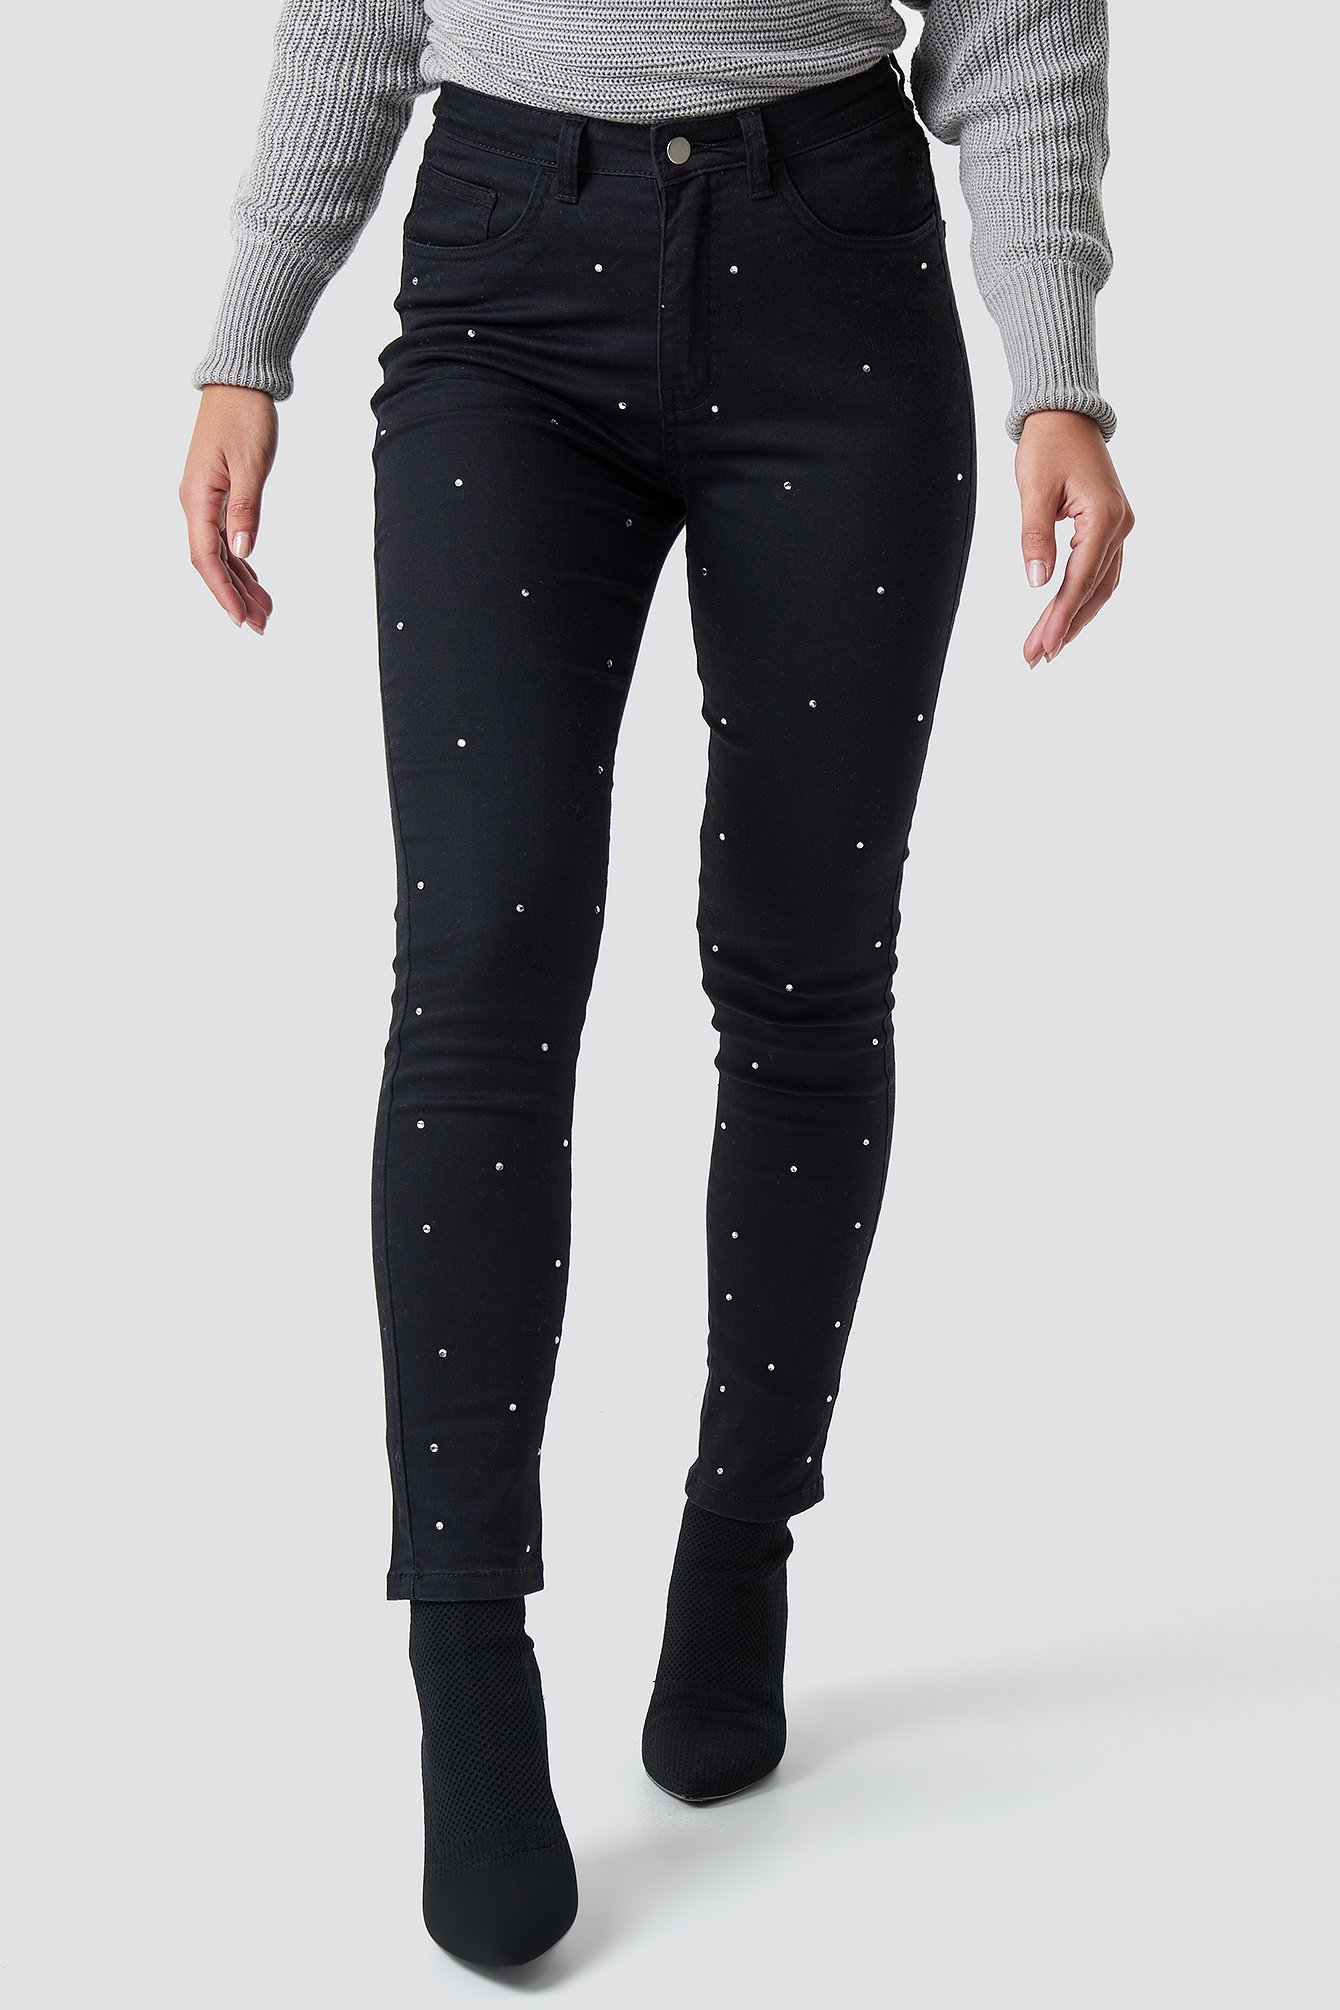 Black Rhinestone Denim